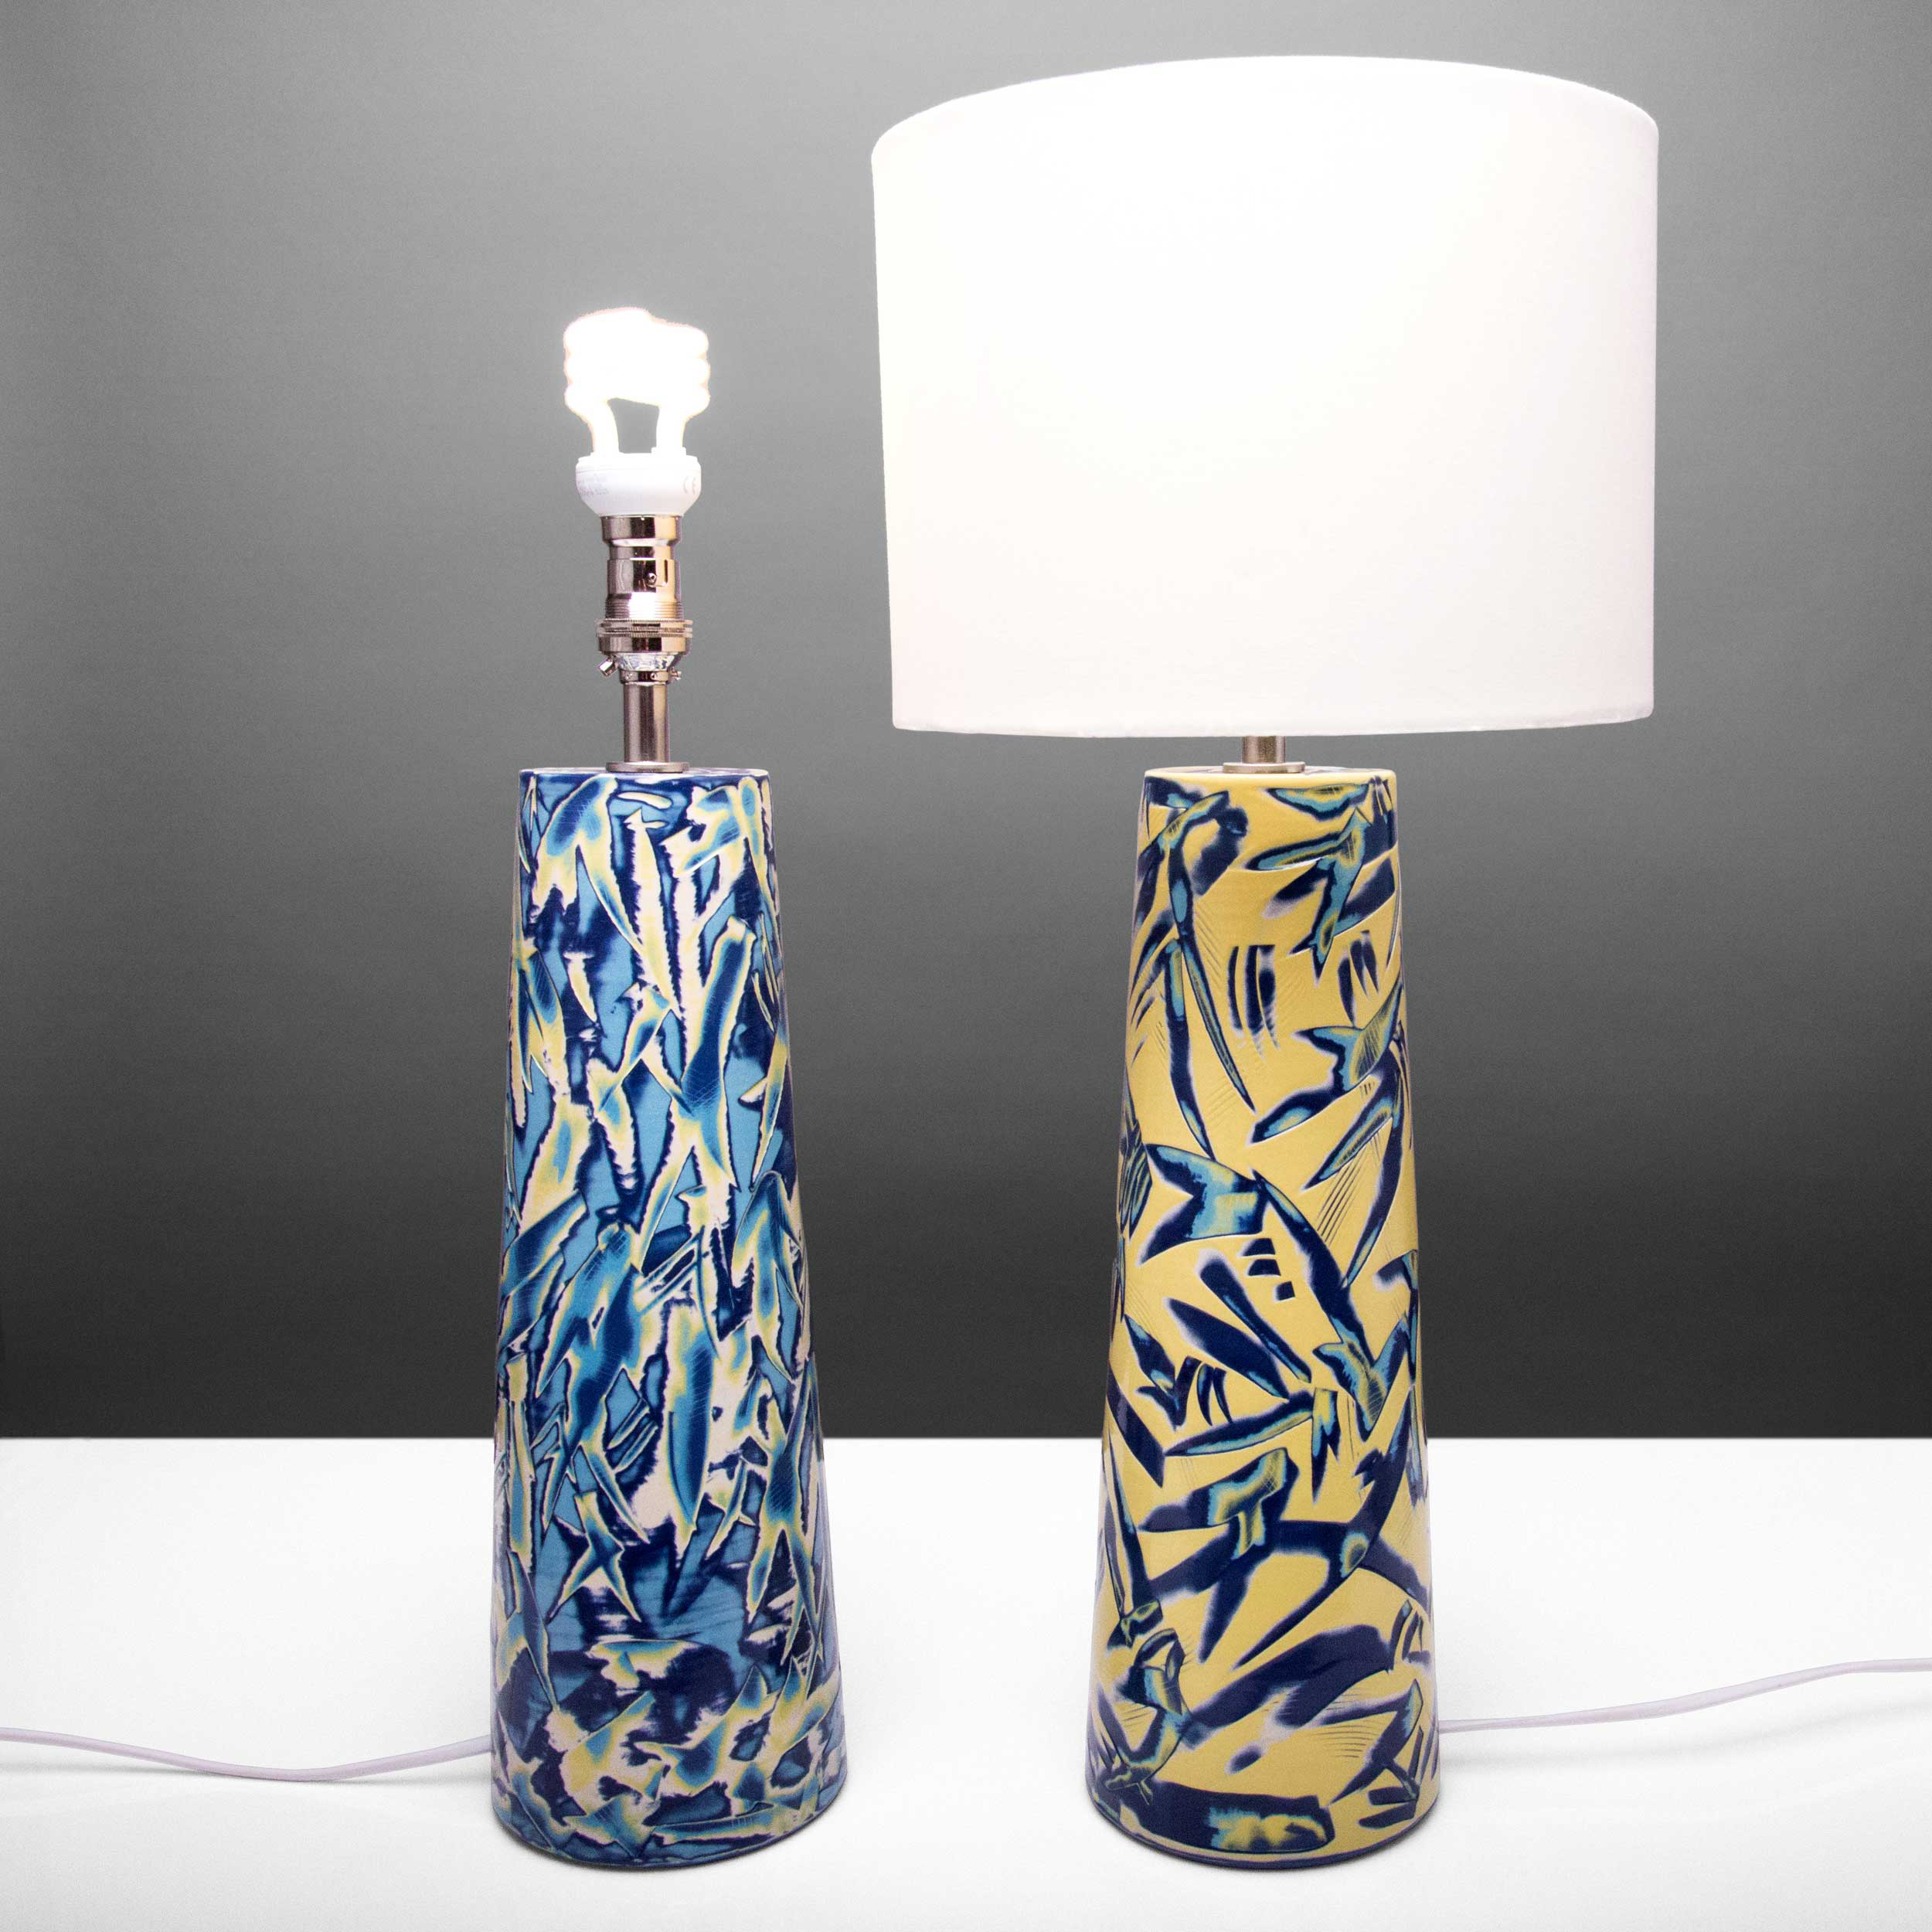 Carrio Design Table Lamps Reef Series by Rowena Gilbert